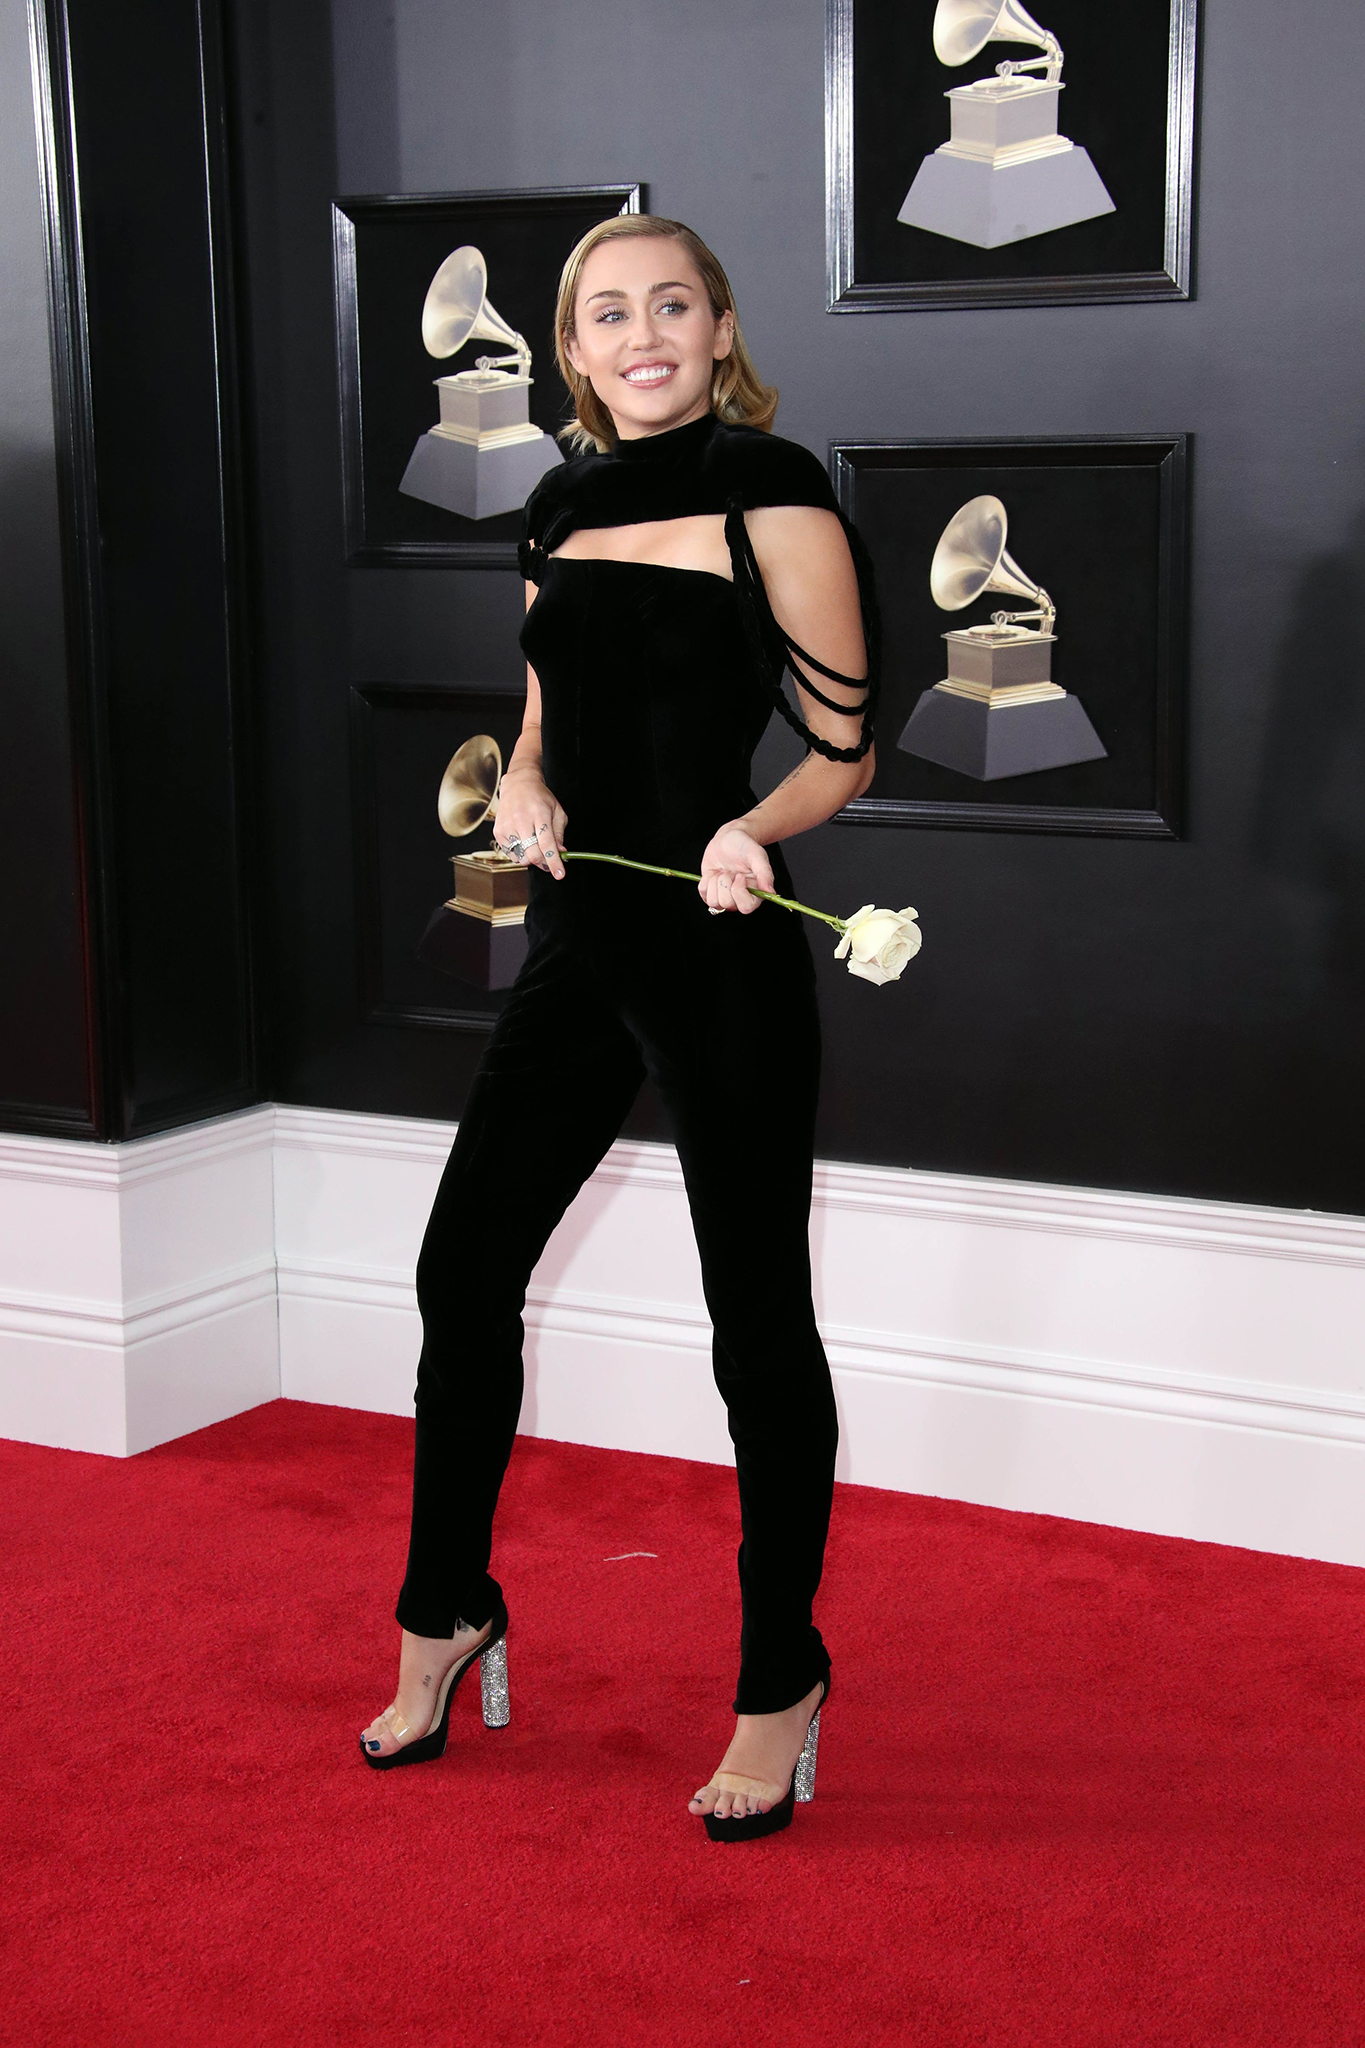 Miley Cyrus arrives at the 60th Annual Grammy Awards at Madison Square Garden.